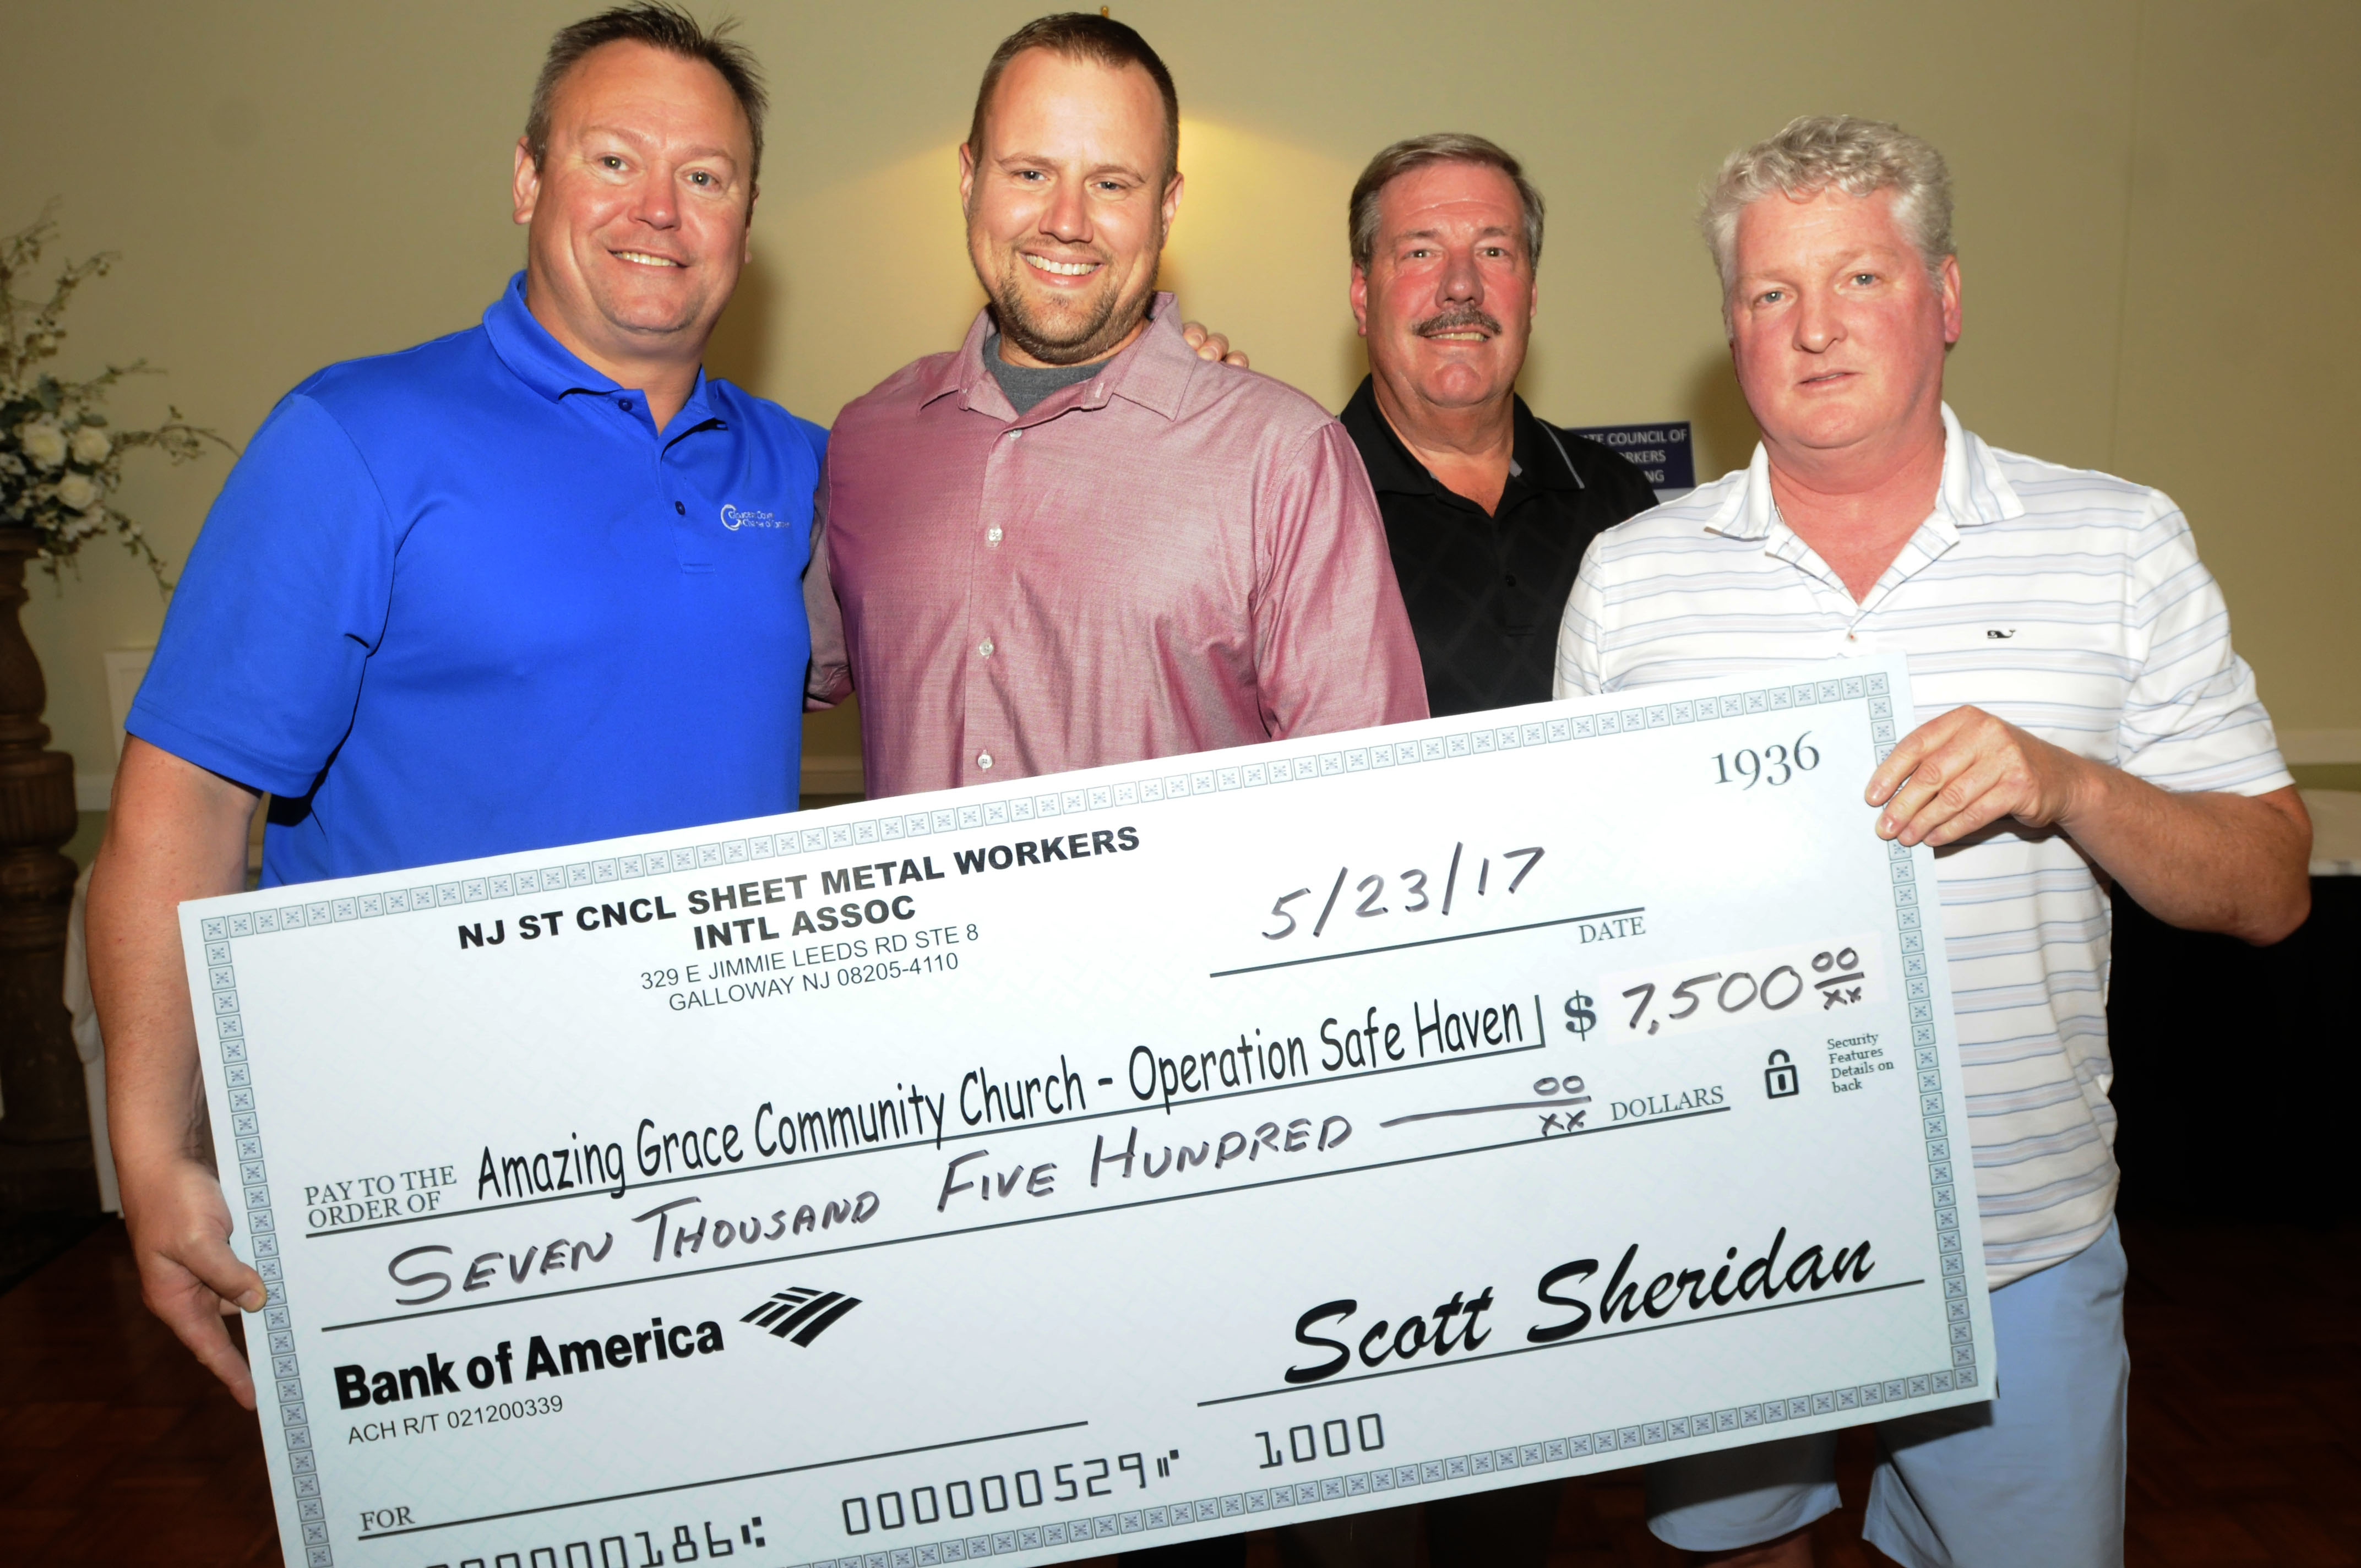 Sheet Metal Workers Golf Outing Raises Funds For Operation